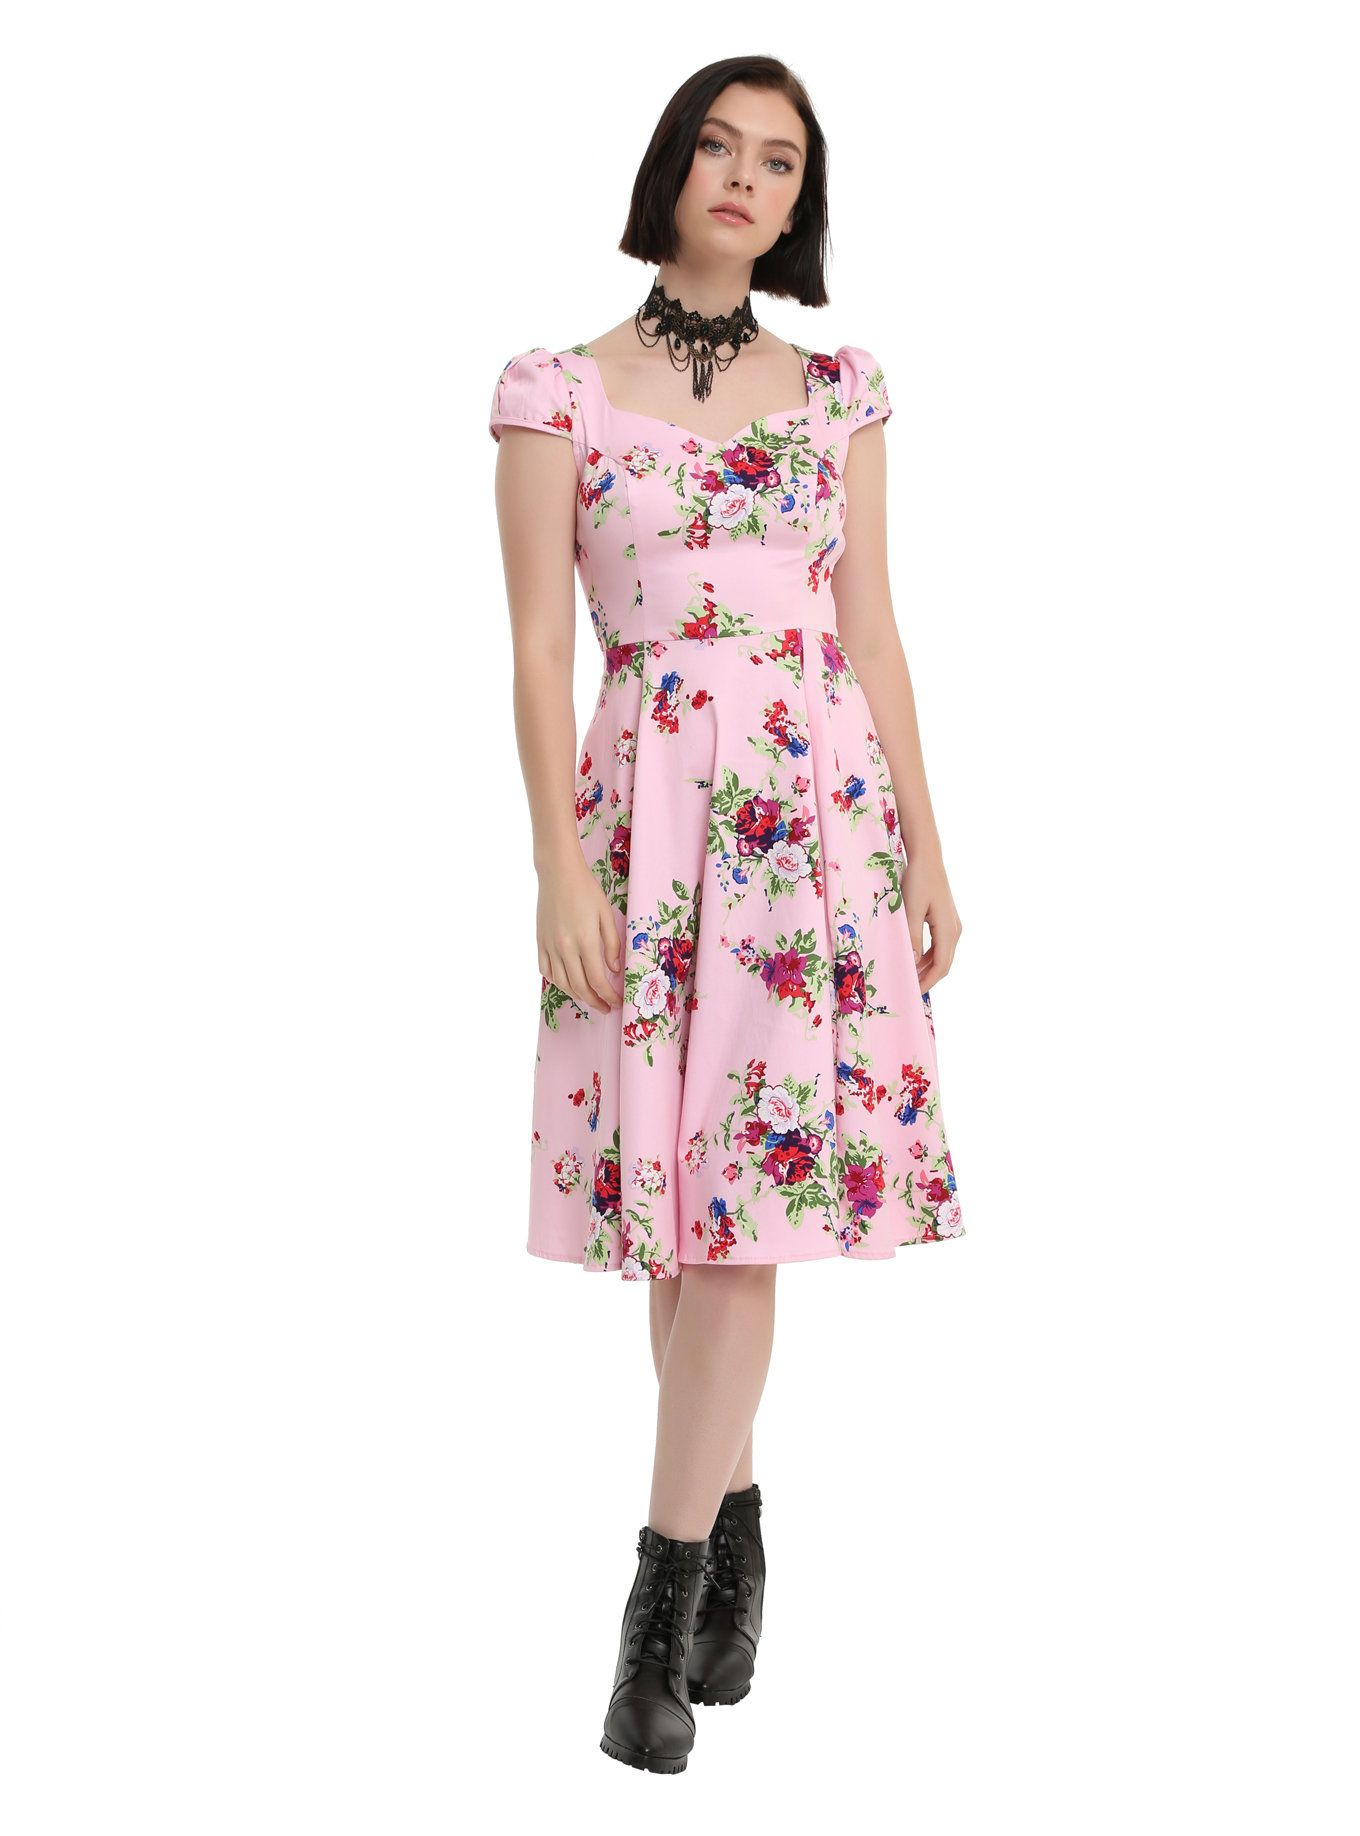 1514a95bf5 Pink vintage hot topic floral swing dress